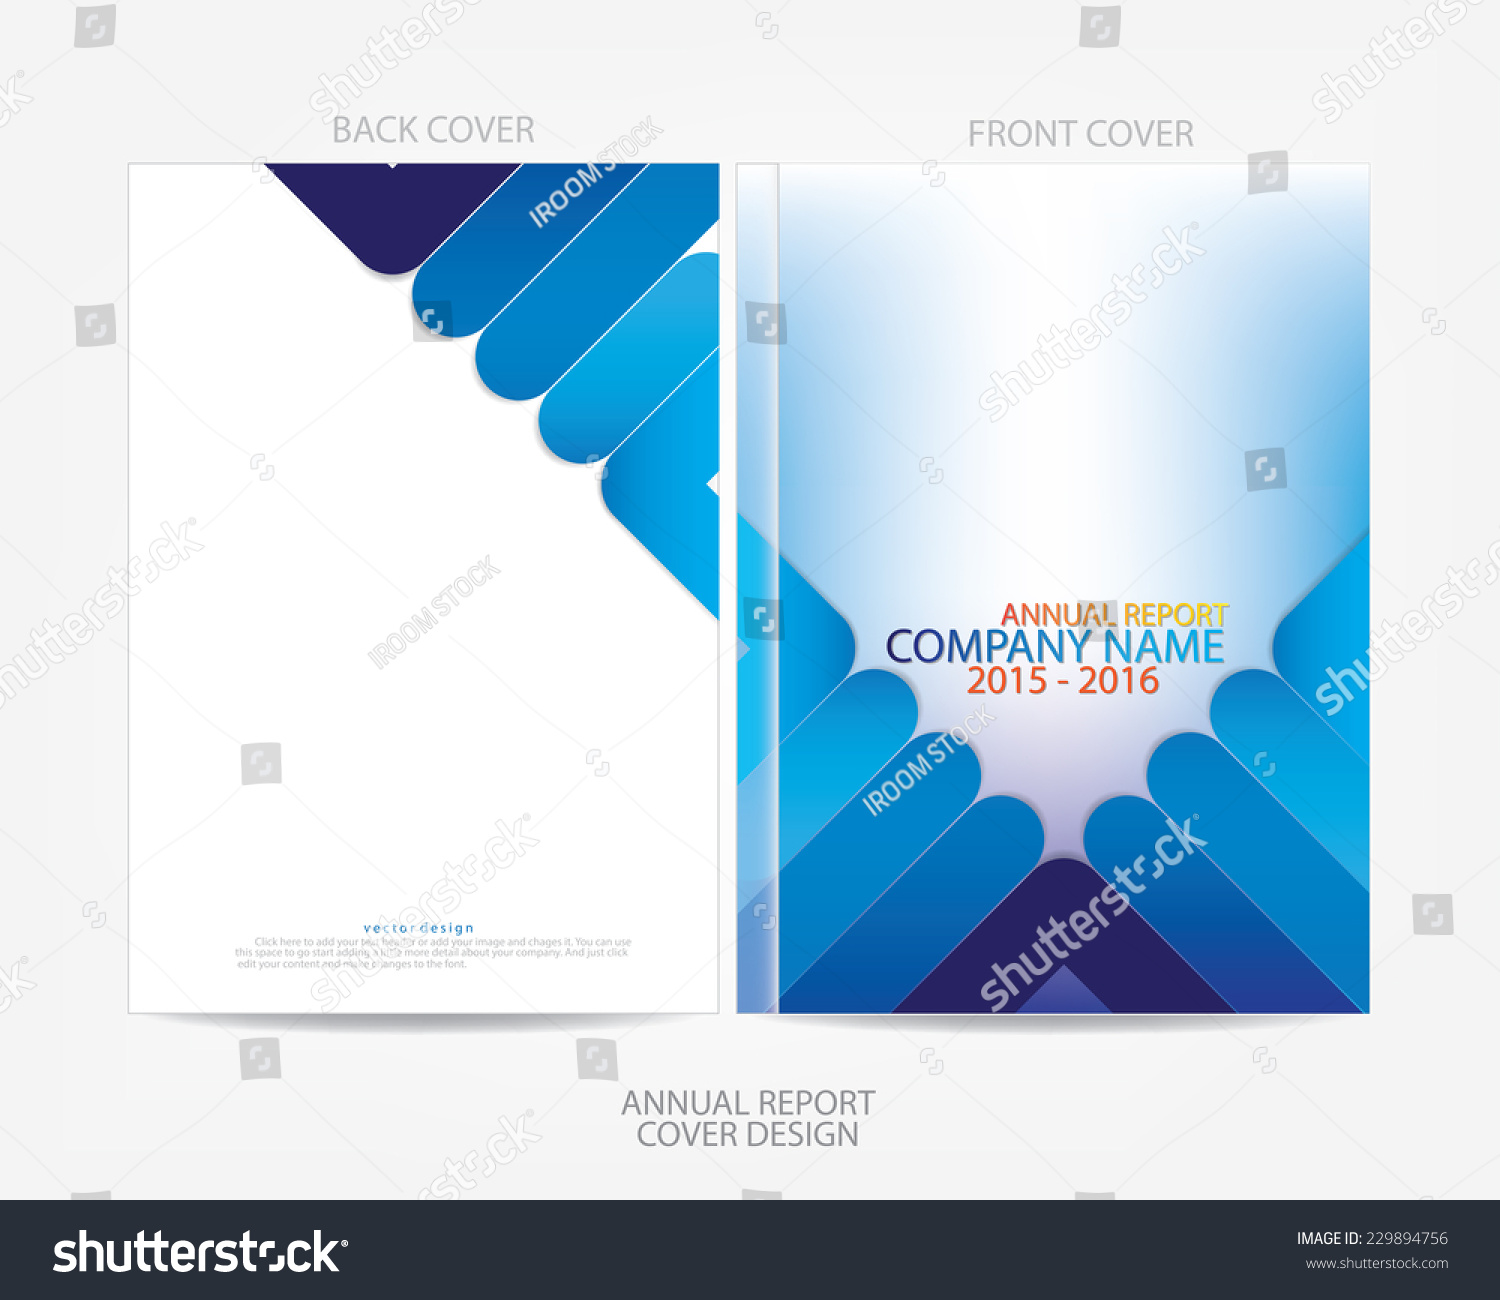 annual report cover design stock vector 229894756 shutterstock annual report cover design